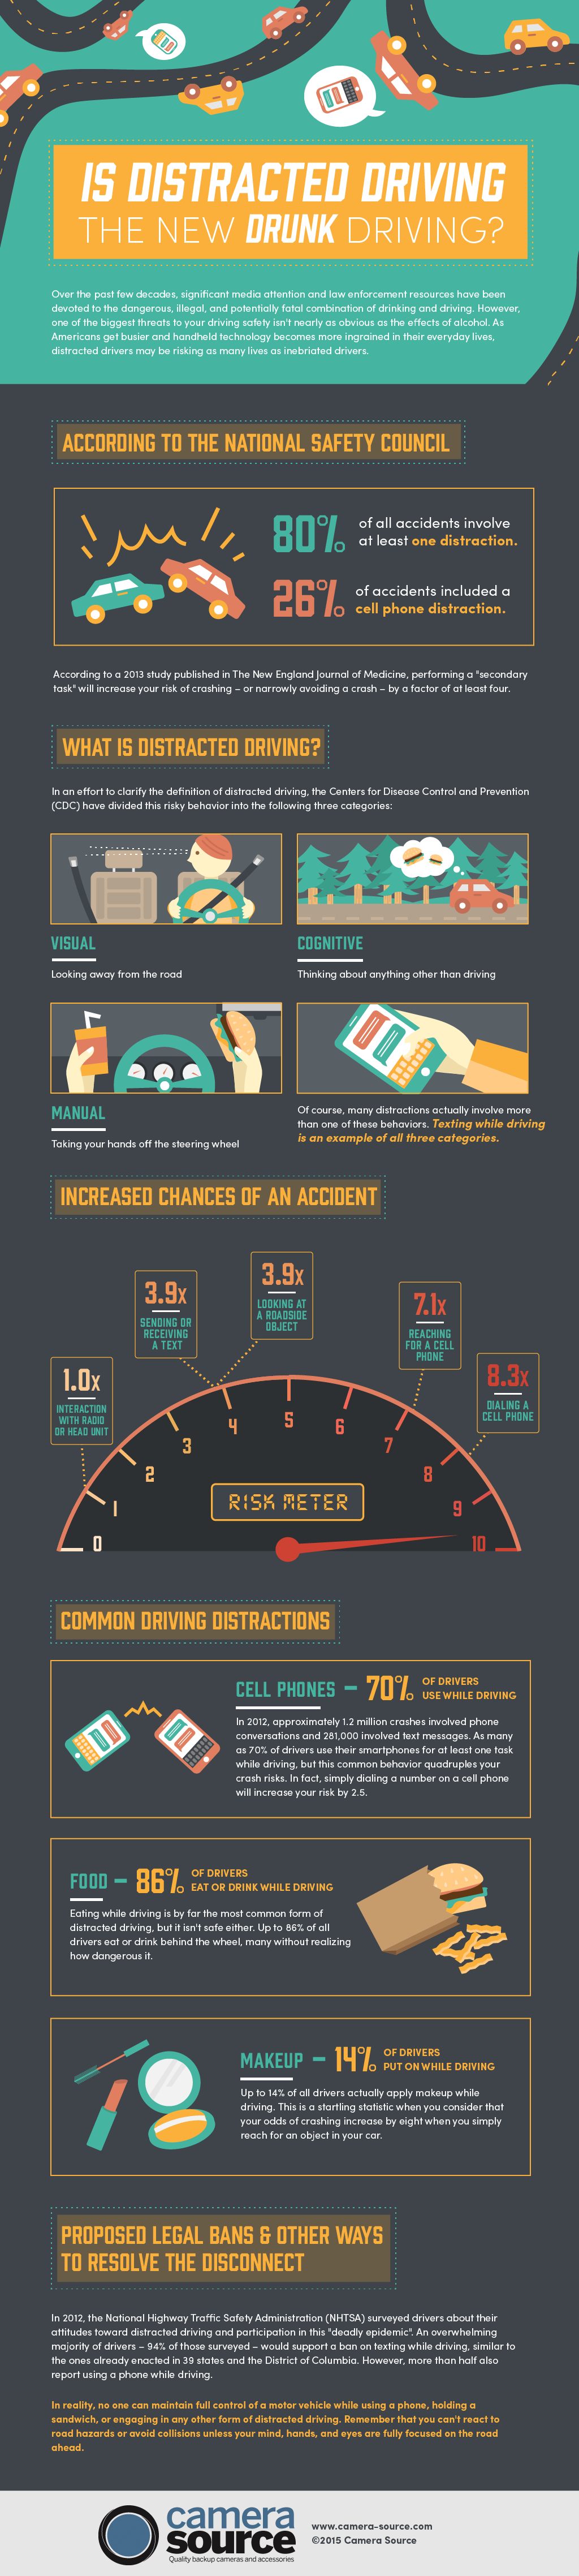 Is Distracted Driving The New Drunk Driving?